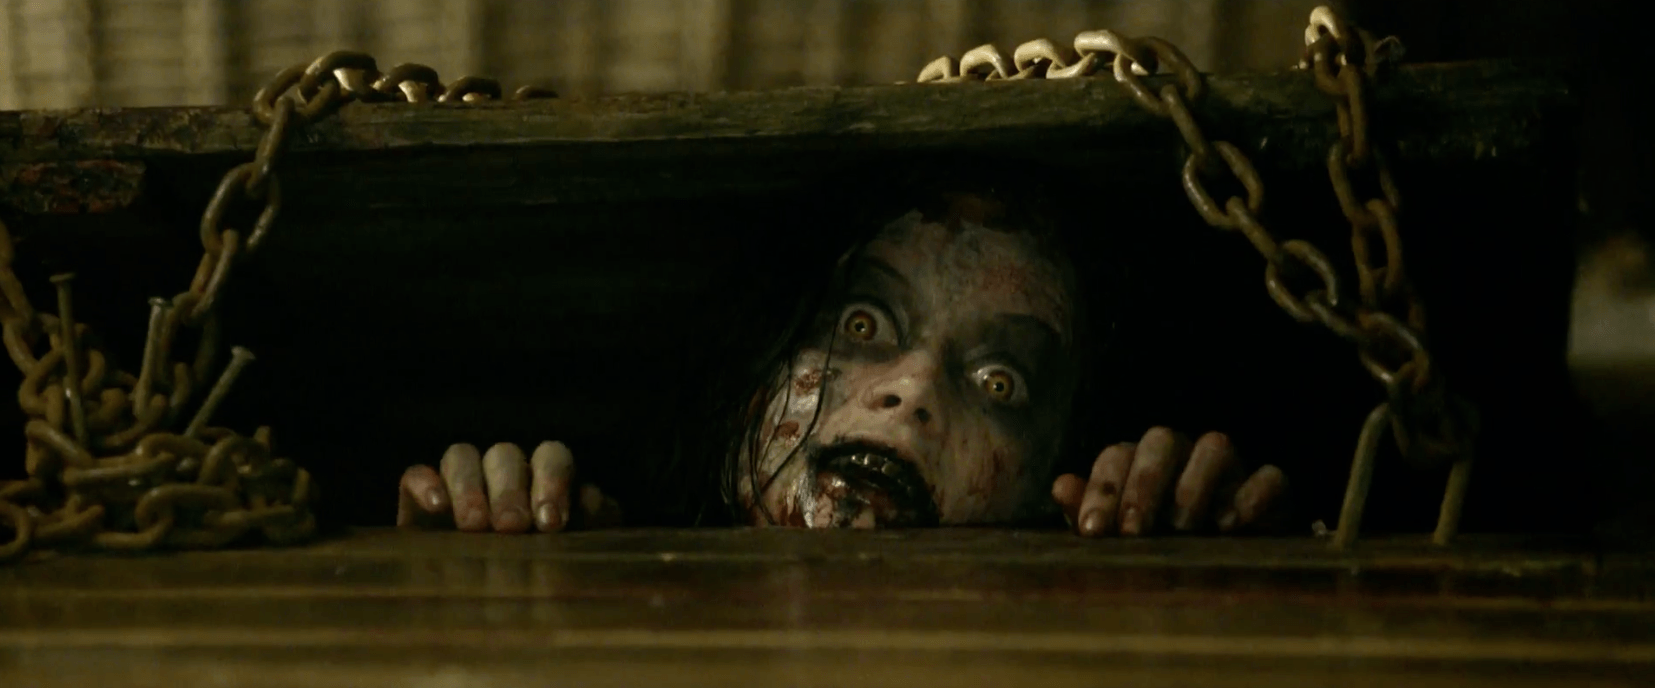 Film: The Evil Dead feature image